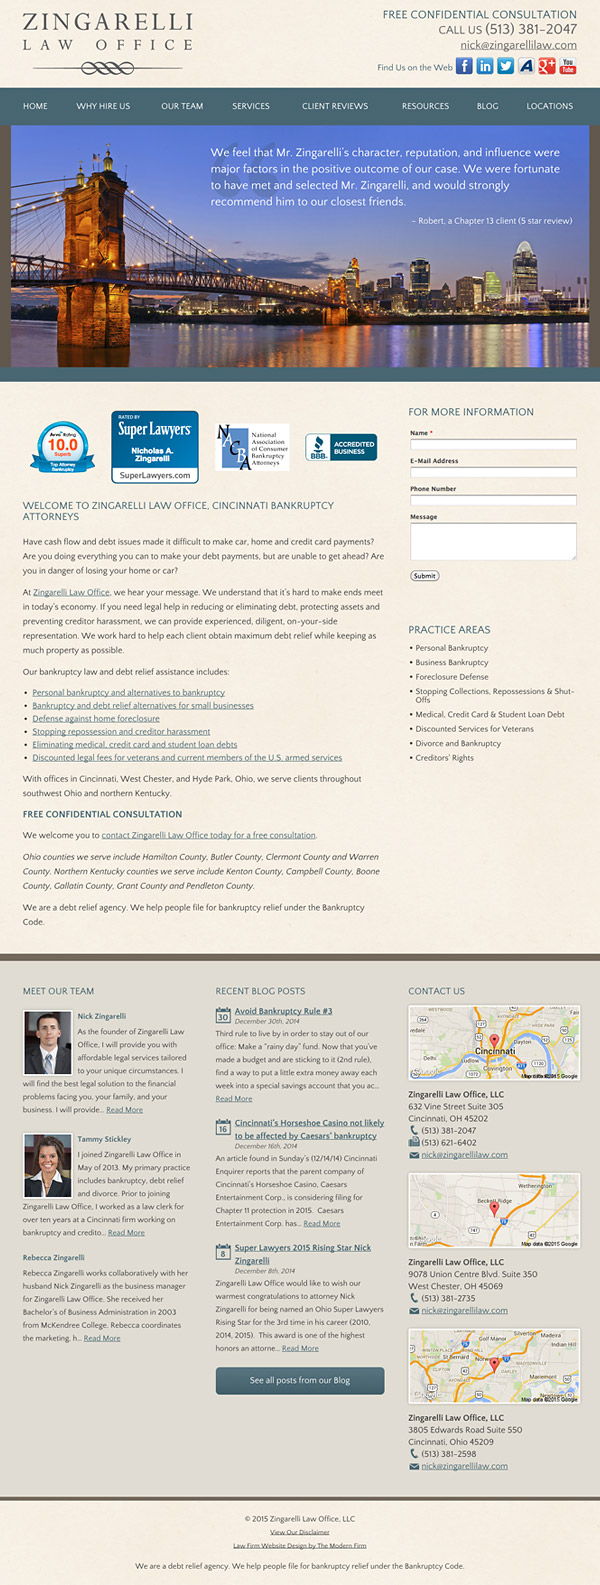 Law Firm Website Design for Zingarelli Law Office, LLC